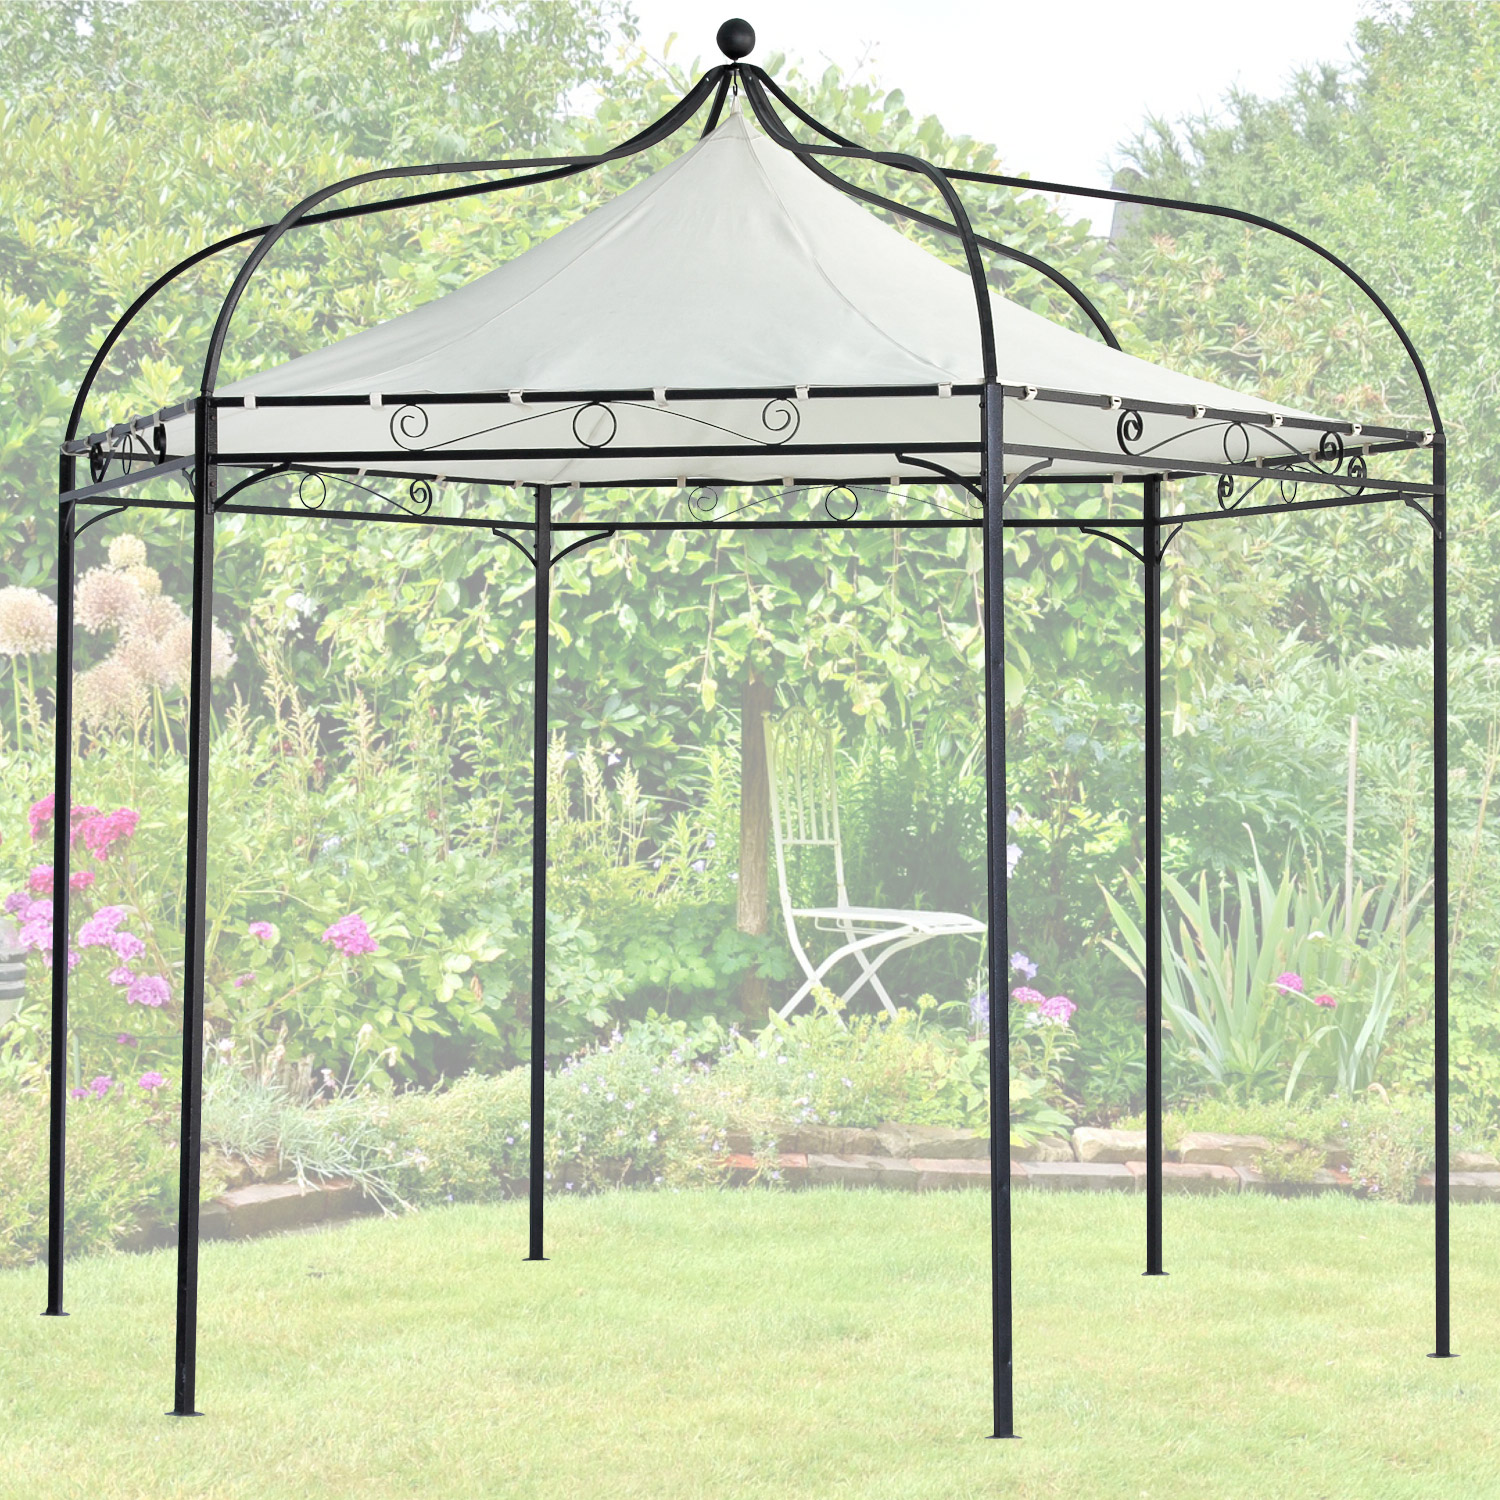 terena metall gartenpavillon 320x280 cm gazebo garten. Black Bedroom Furniture Sets. Home Design Ideas